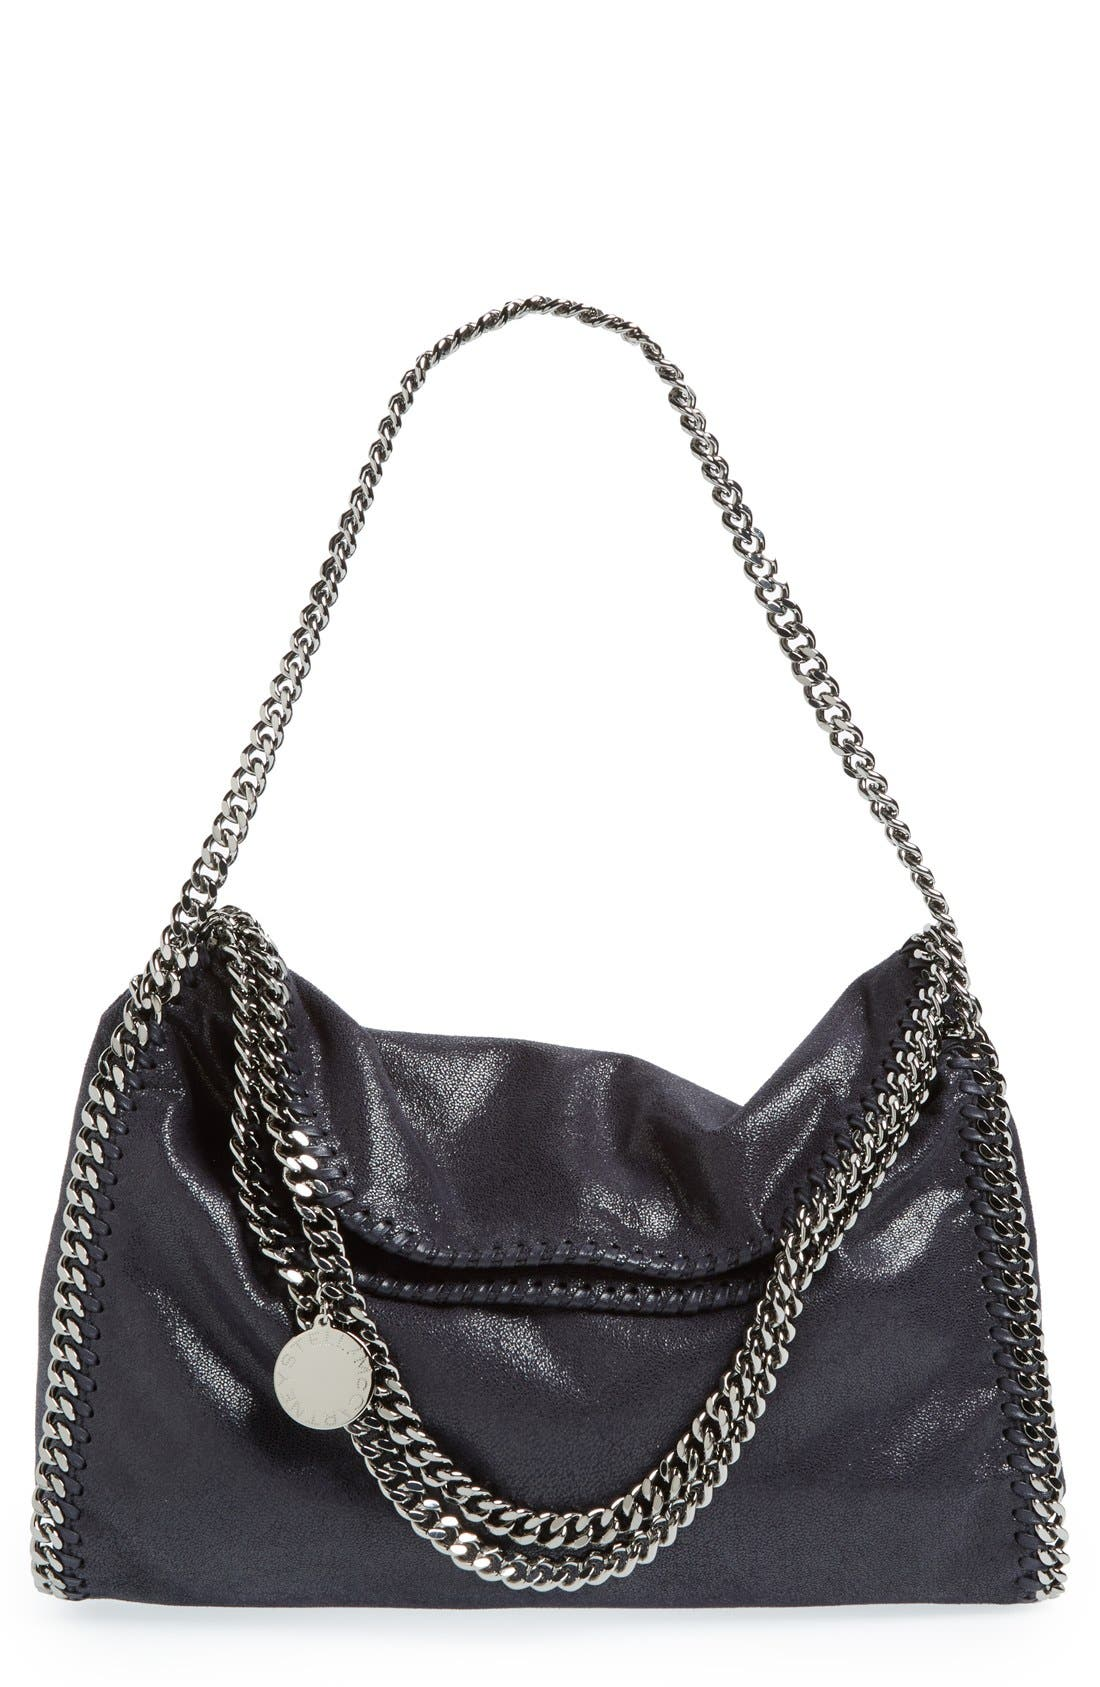 Alternate Image 1 Selected - Stella McCartney 'Falabella - Shaggy Deer' Faux Leather Foldover Tote